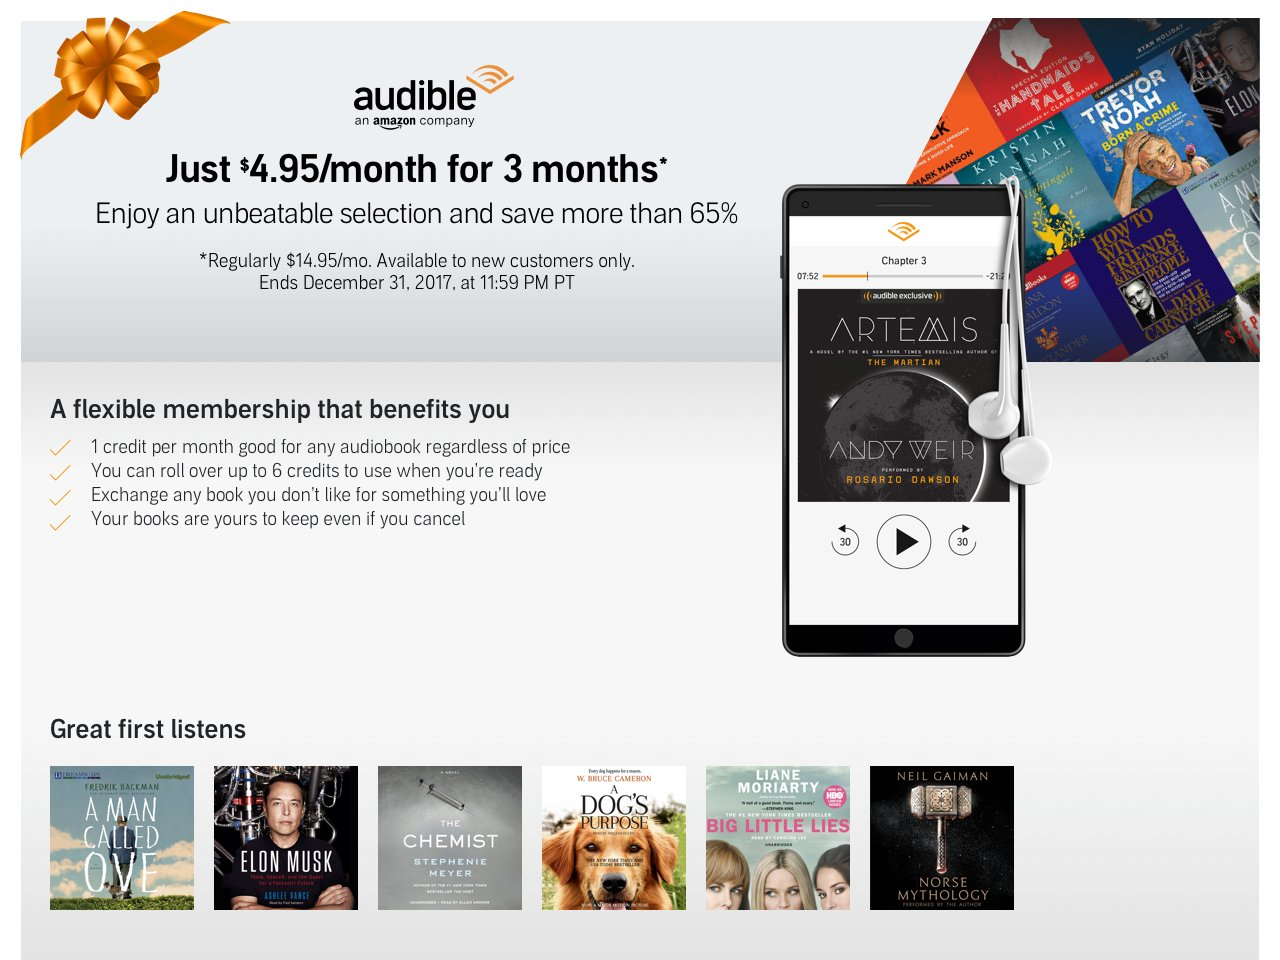 This is a limited time offer. For the first 3 months of your Audible membership, you will be charged the discounted price of $4.95/mo. You will be charged one time per month and will receive one credit per month. After the first 3 months, your Audible membership will continue at $14.95/mo until cancelled. You will be billed monthly, and will receive one credit each month, good for any Audible audiobook. . Offer only applies to Audible digital subscription. Digital content and services may only be available to customers located in the U.S. and are subject to the terms and conditions of Audible, Inc. Offer applies only to an Audible monthly membership sold by audible.com. The same items sold by other sellers (e.g. audible.co.uk, etc.) do not qualify. Offer limited to one per customer and account. Offer may not be combined with other offers. The maximum benefit you may receive from this offer is $30 (a $10 discount off the normal $14.95 monthly price for the first 3 months). This offer is not available to existing Audible members or those participating in an Audible free trial, or customers who have cancelled an Audible subscription or free trial in the last 3 months. Audible reserves the right to modify or cancel the offer at any time. Offer is non-transferable and may not be resold. If you violate any of these terms, the offer will be invalid.